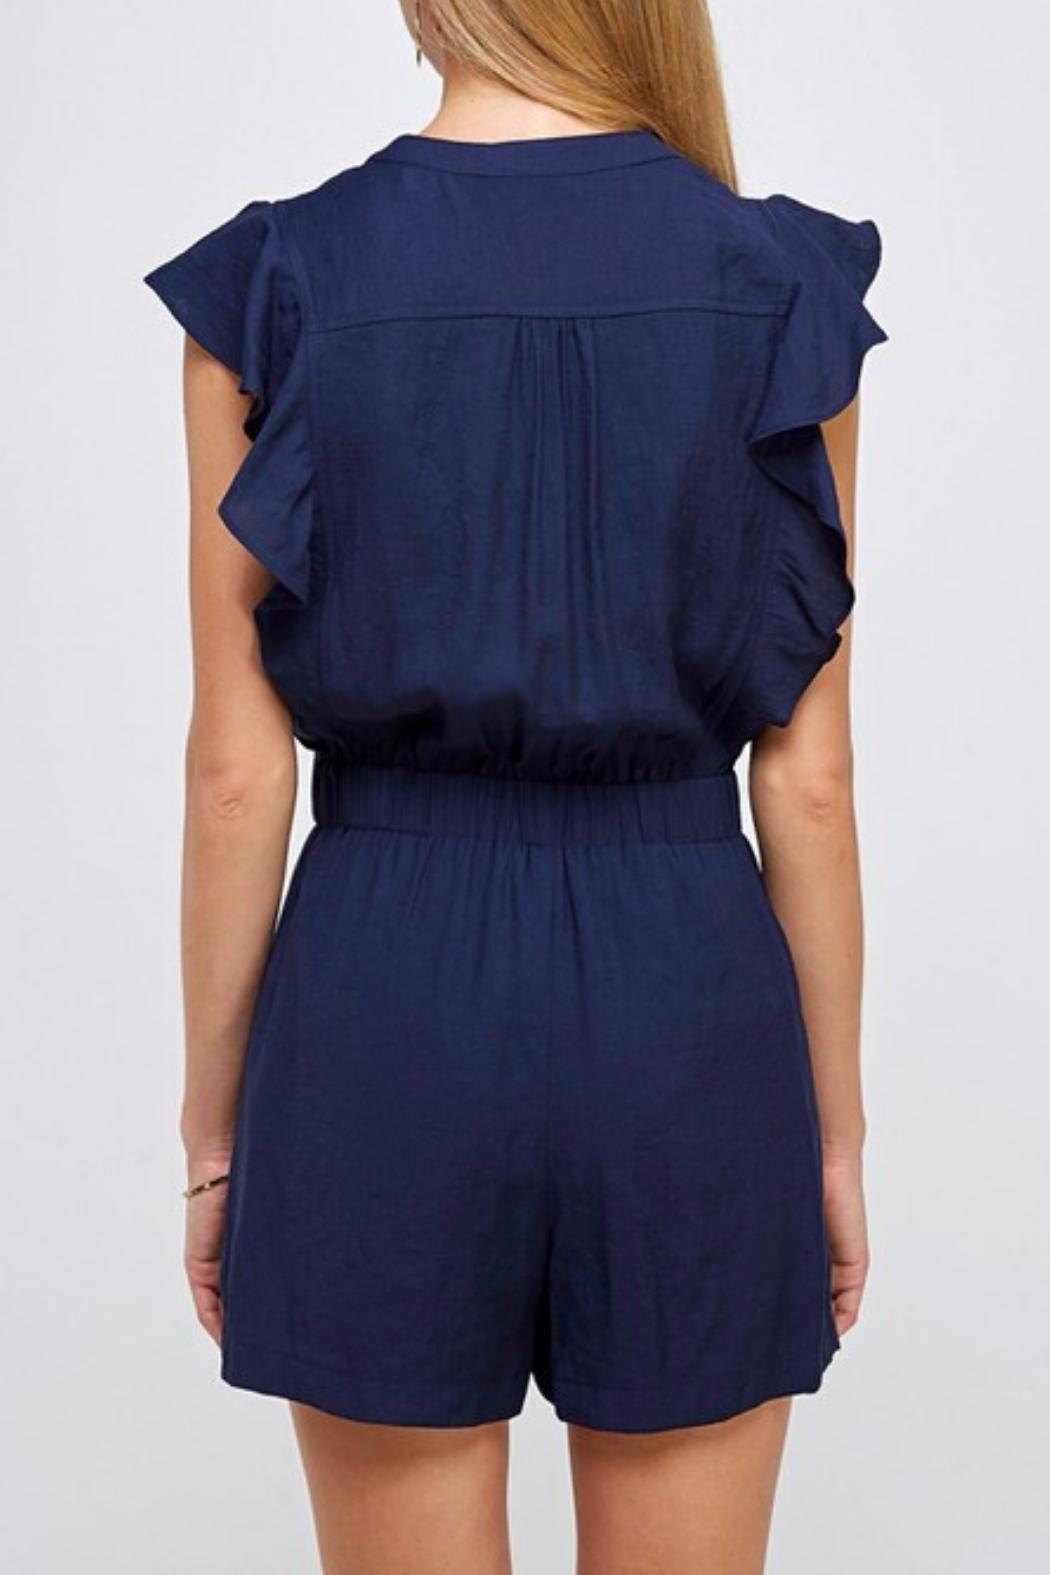 essue Drawstring Ruffle Romper - Side Cropped Image